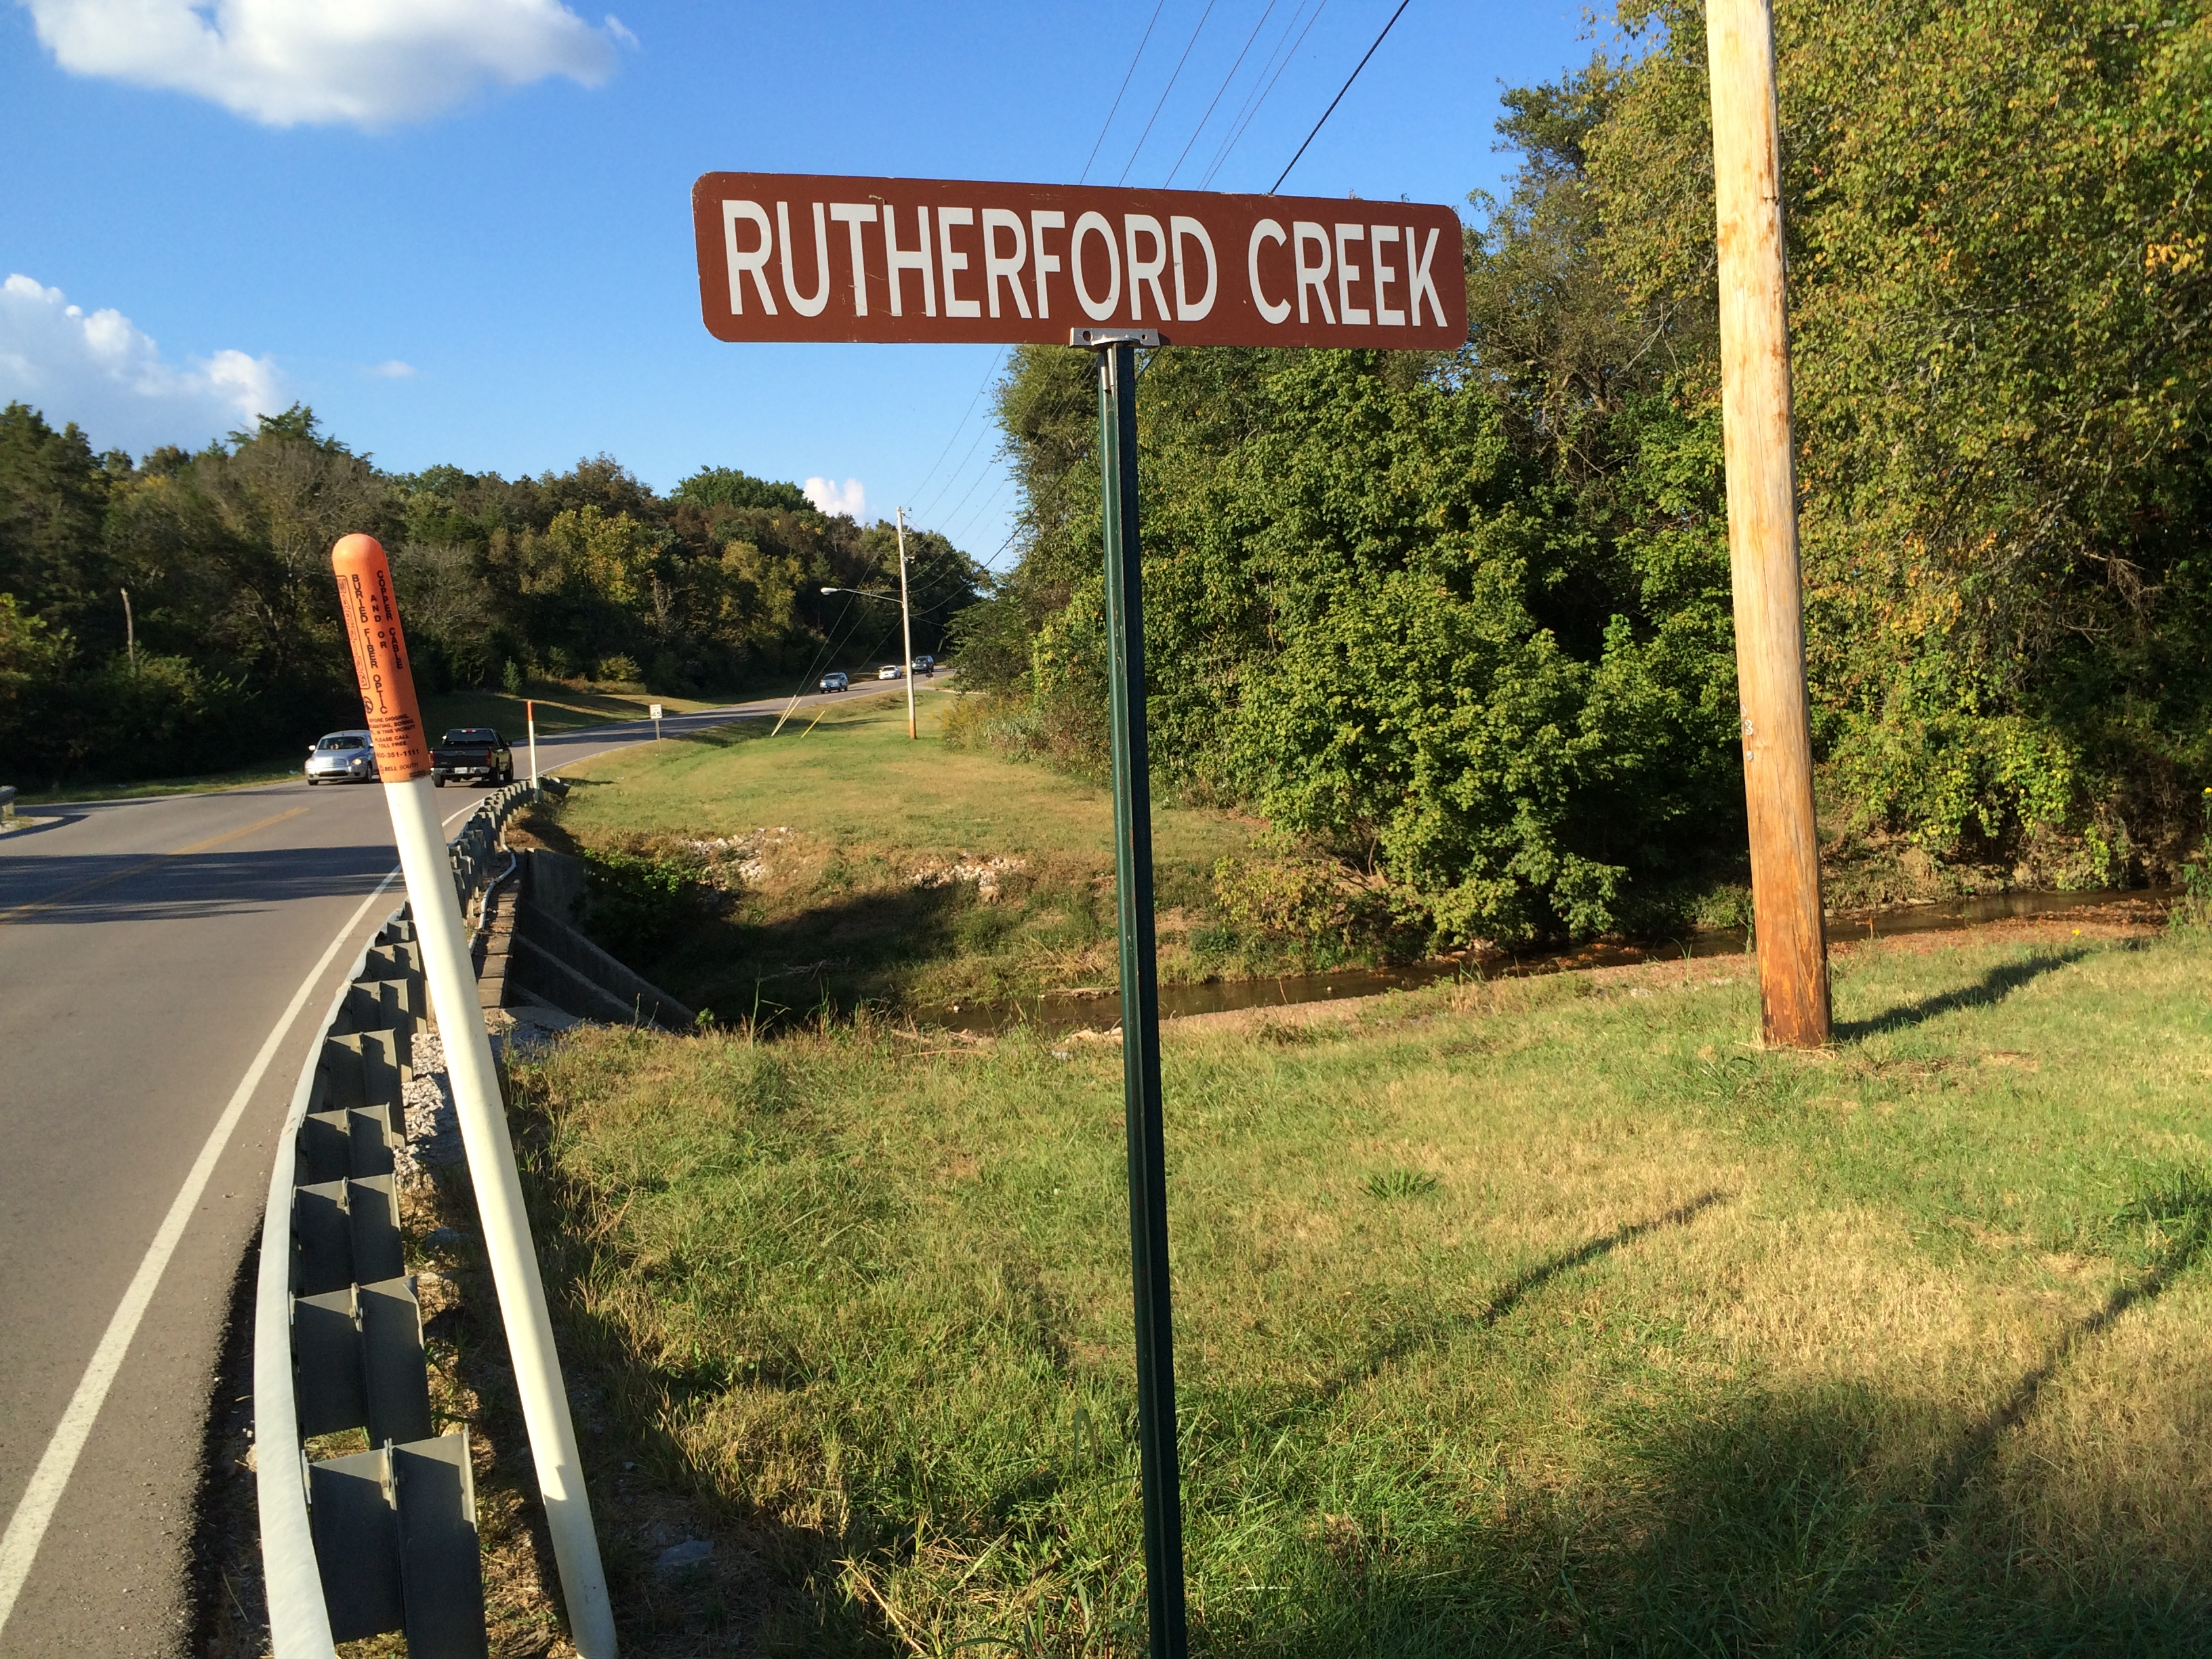 Rutherford Creek